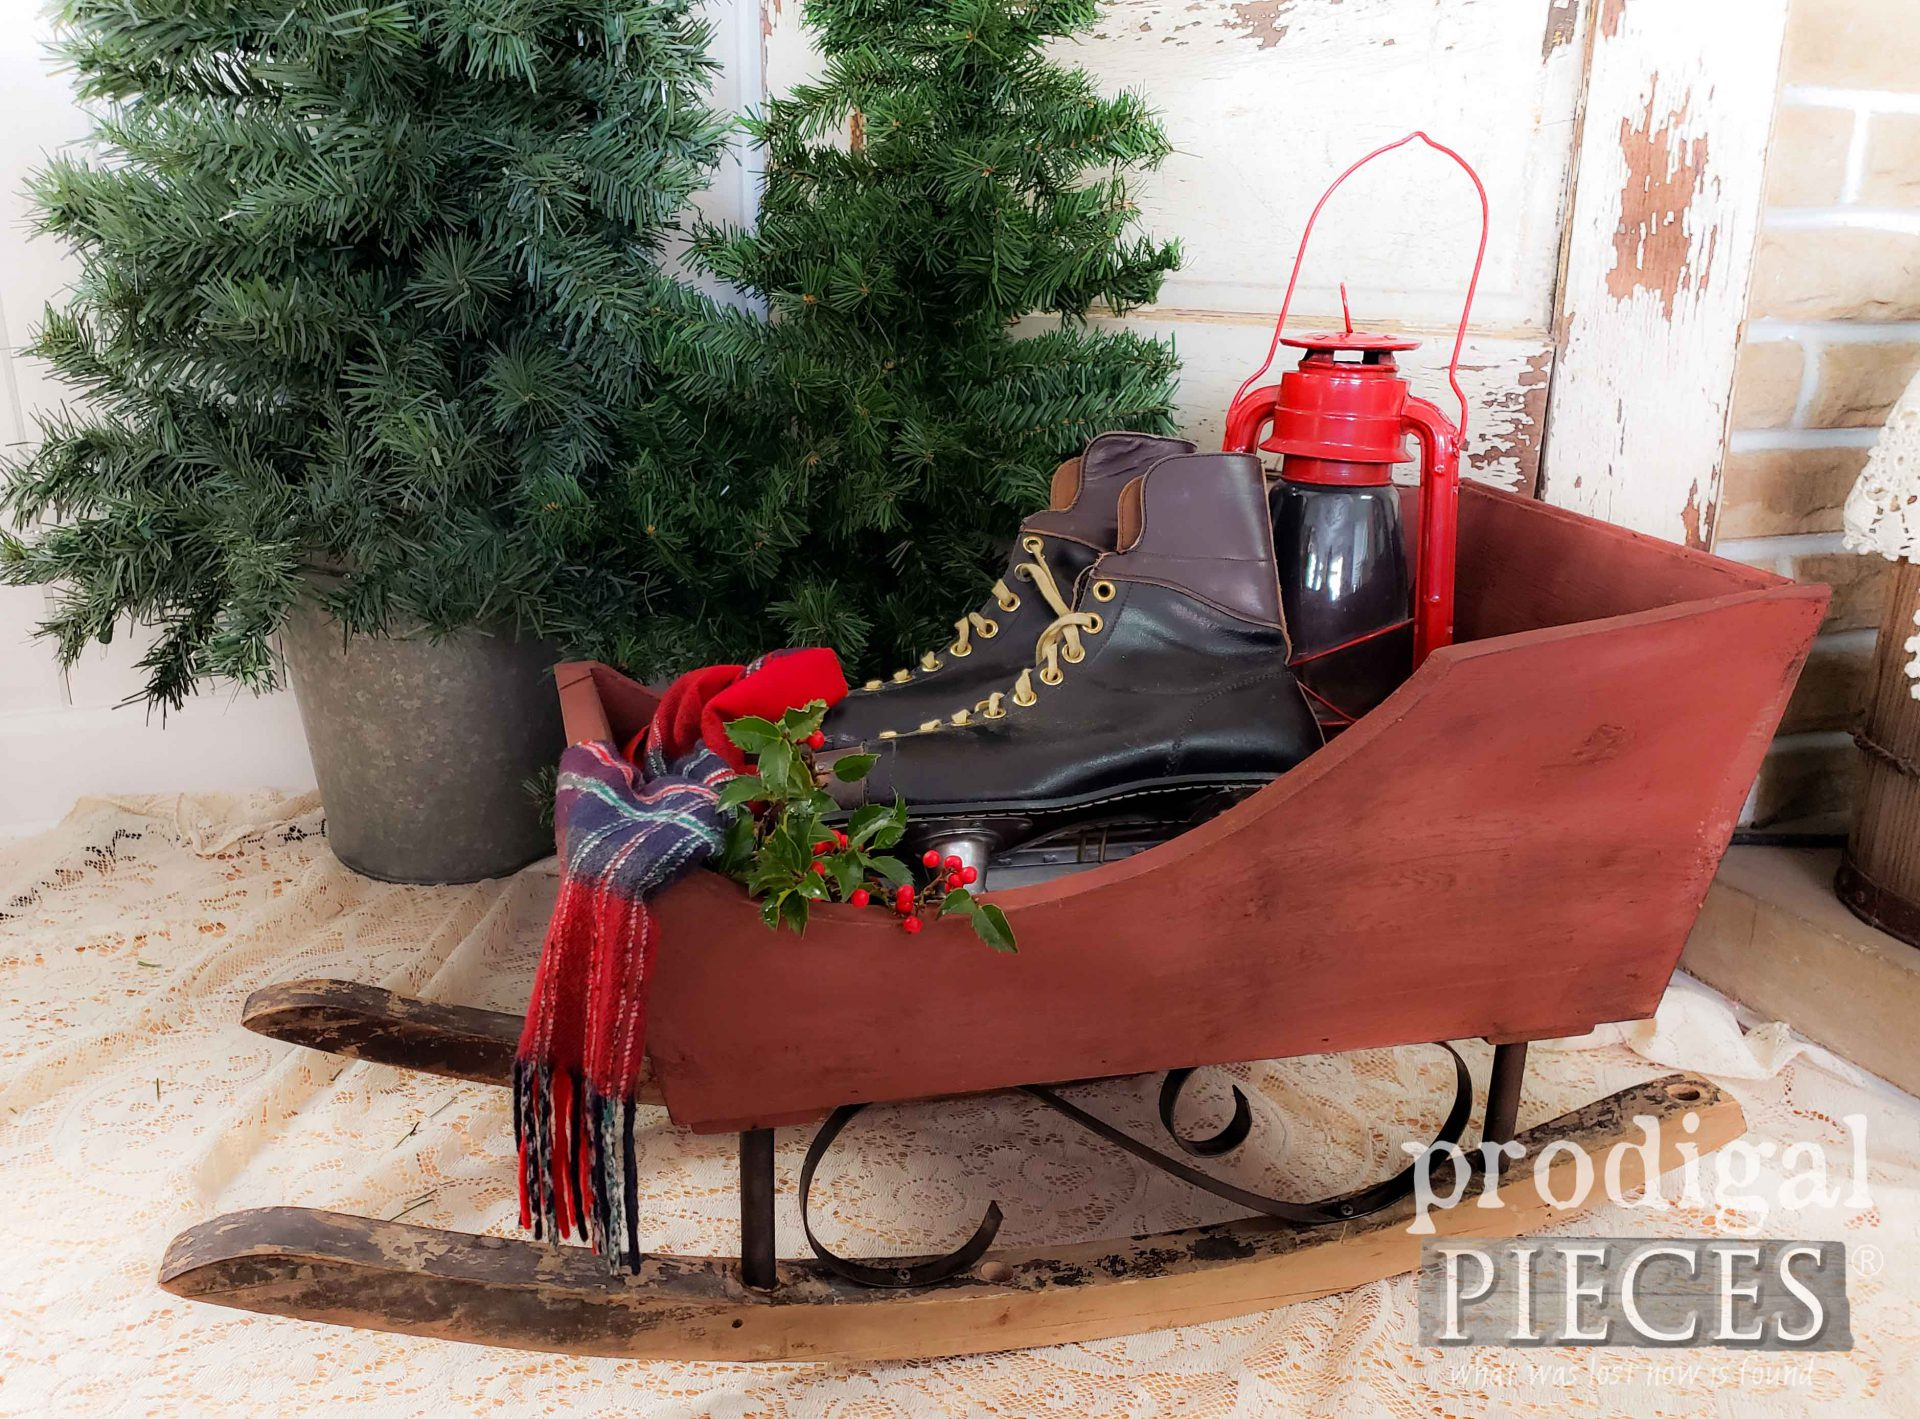 Farmhouse Christmas Sleigh created by Larissa of Prodigal Pieces from Upcycled Parts | prodigalpieces.com #prodigalpieces #farmhouse #christmas #home #homedecor